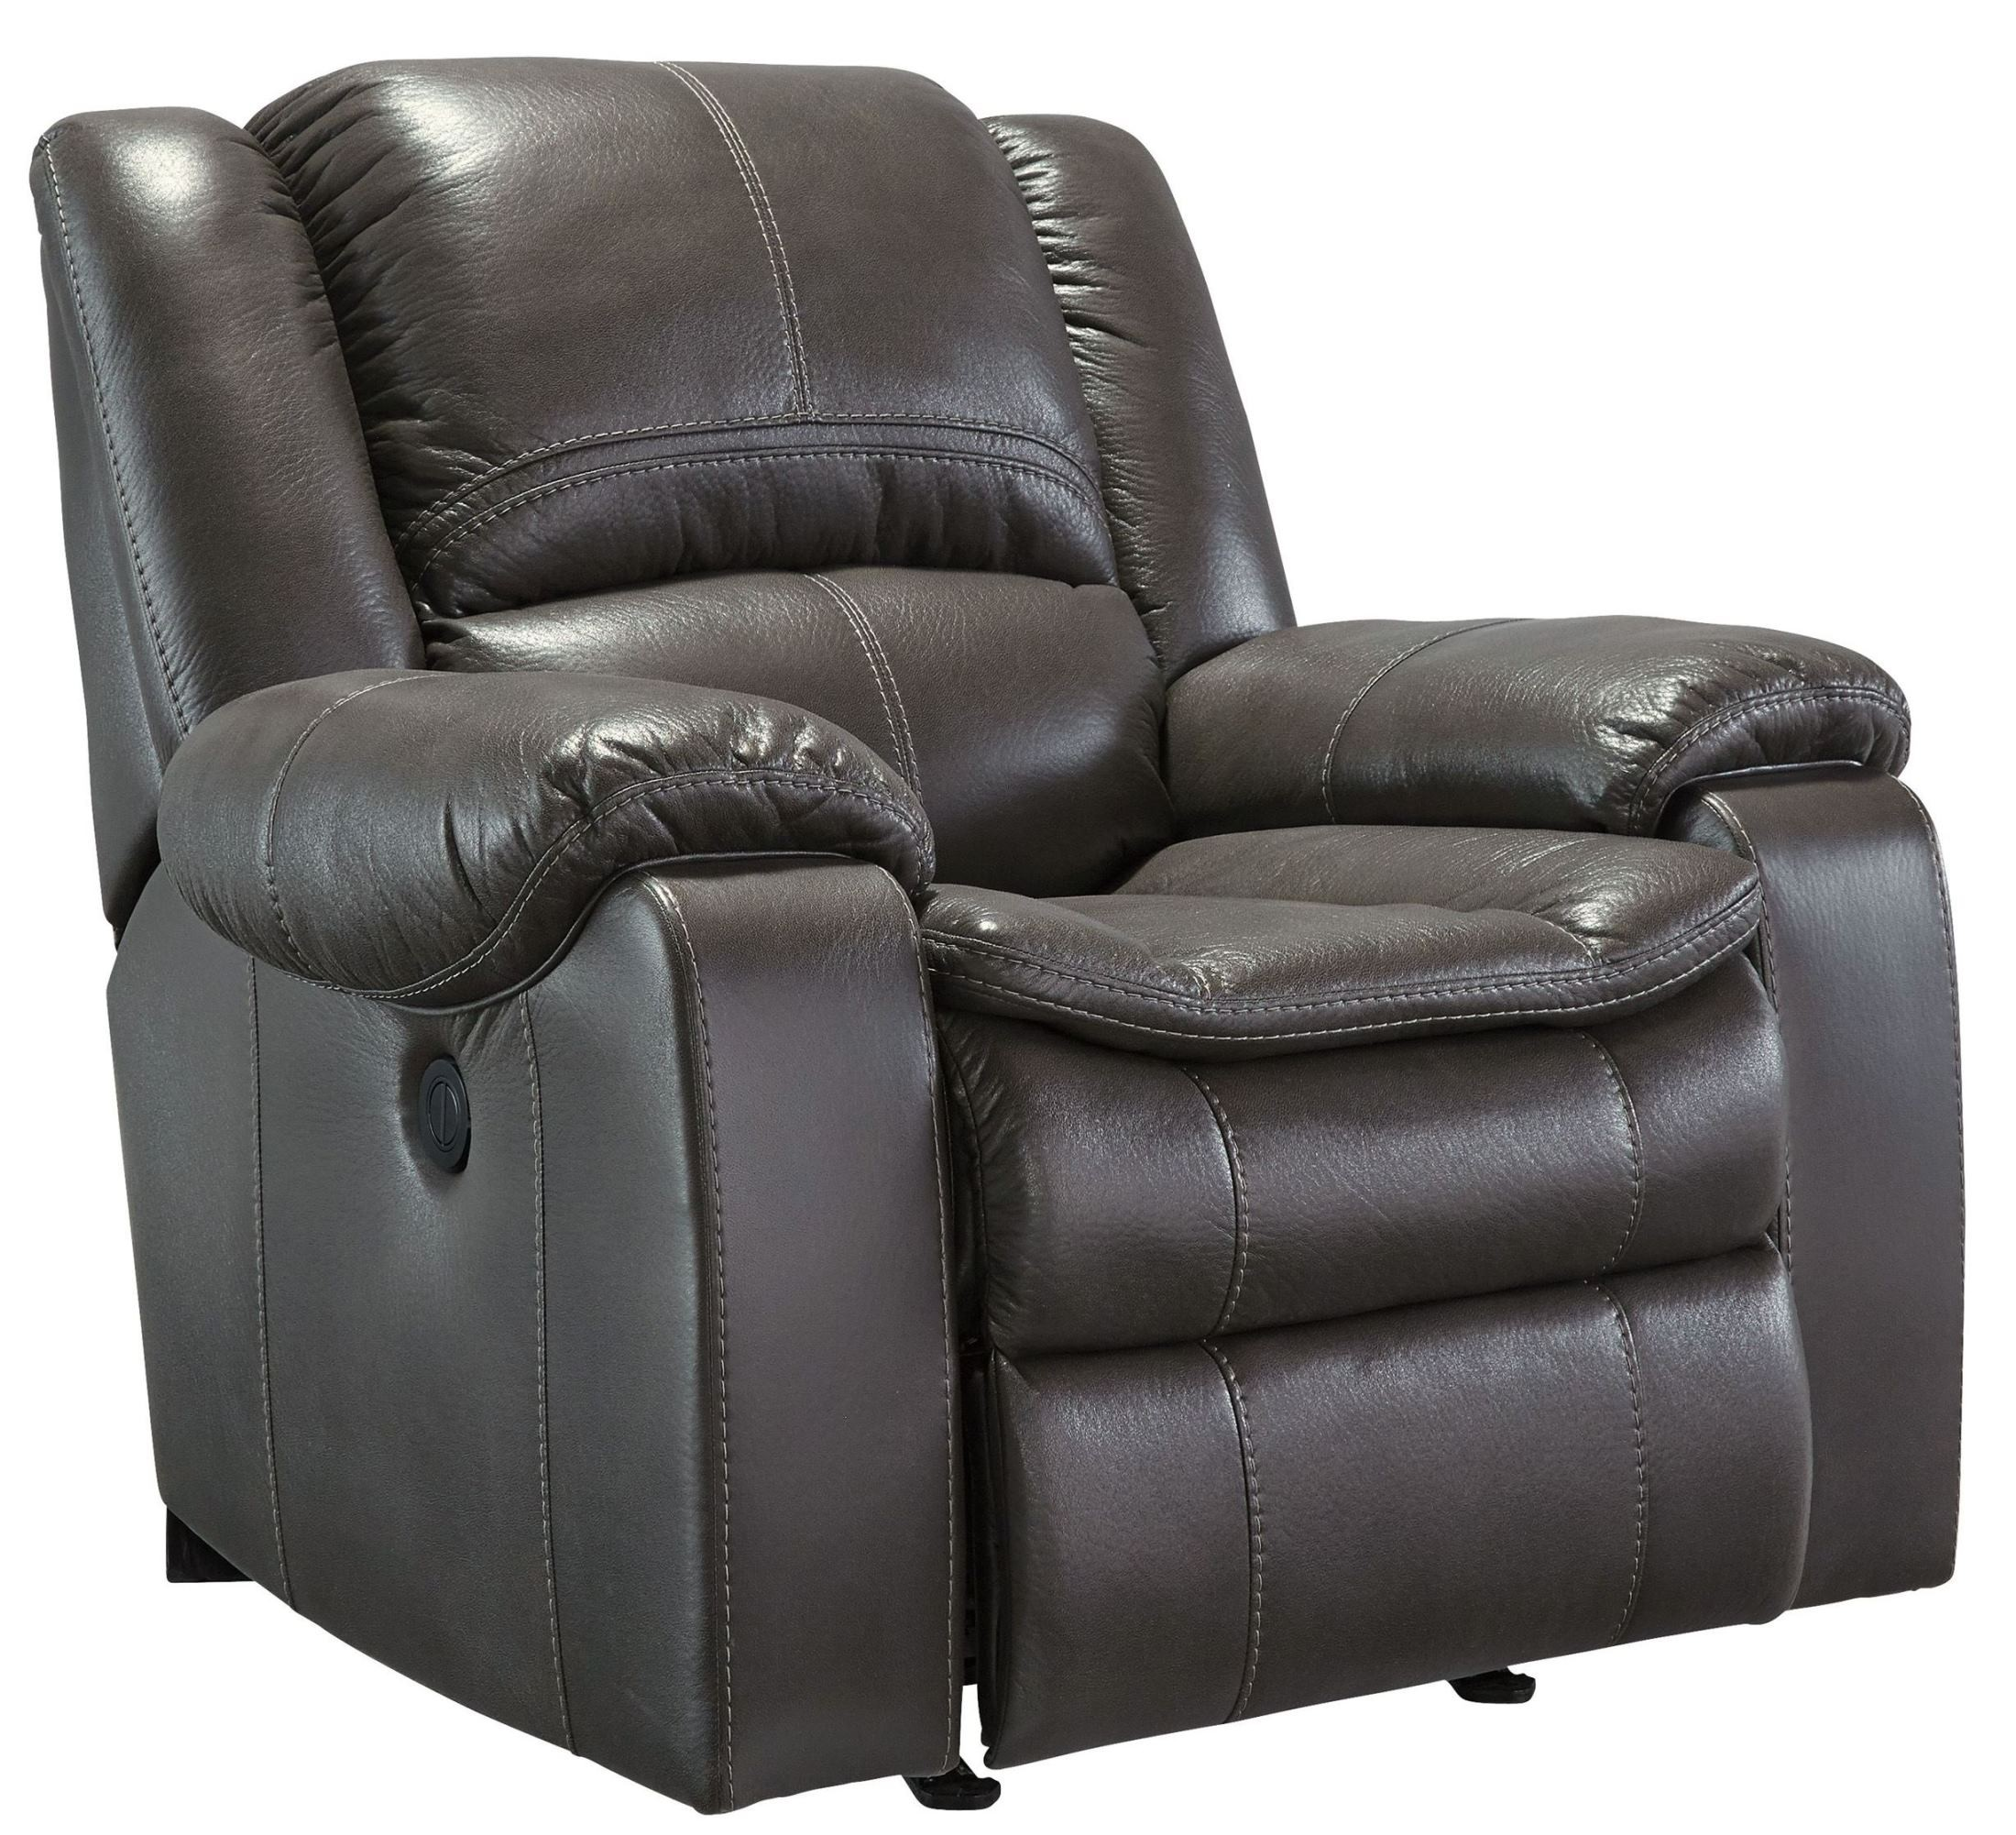 Gray Recliner Chair Long Knight Gray Power Rocker Recliner From Ashley